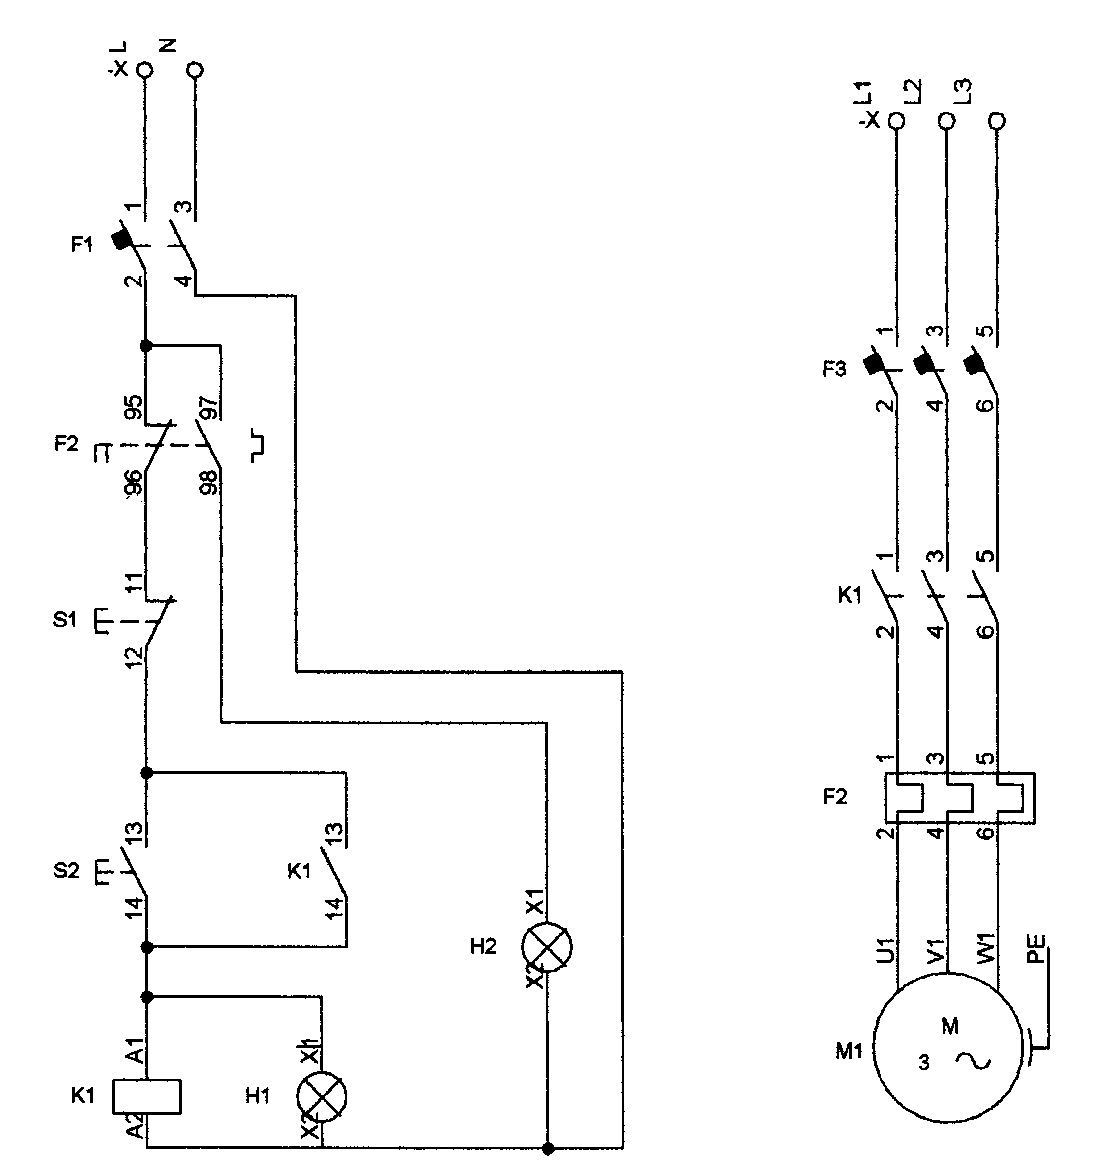 small resolution of  f2 diagrama del motor auto electrical wiring diagram on suzuki wiring diagram modem wiring wiring diagram kulkas 2 pintu mitsubishi